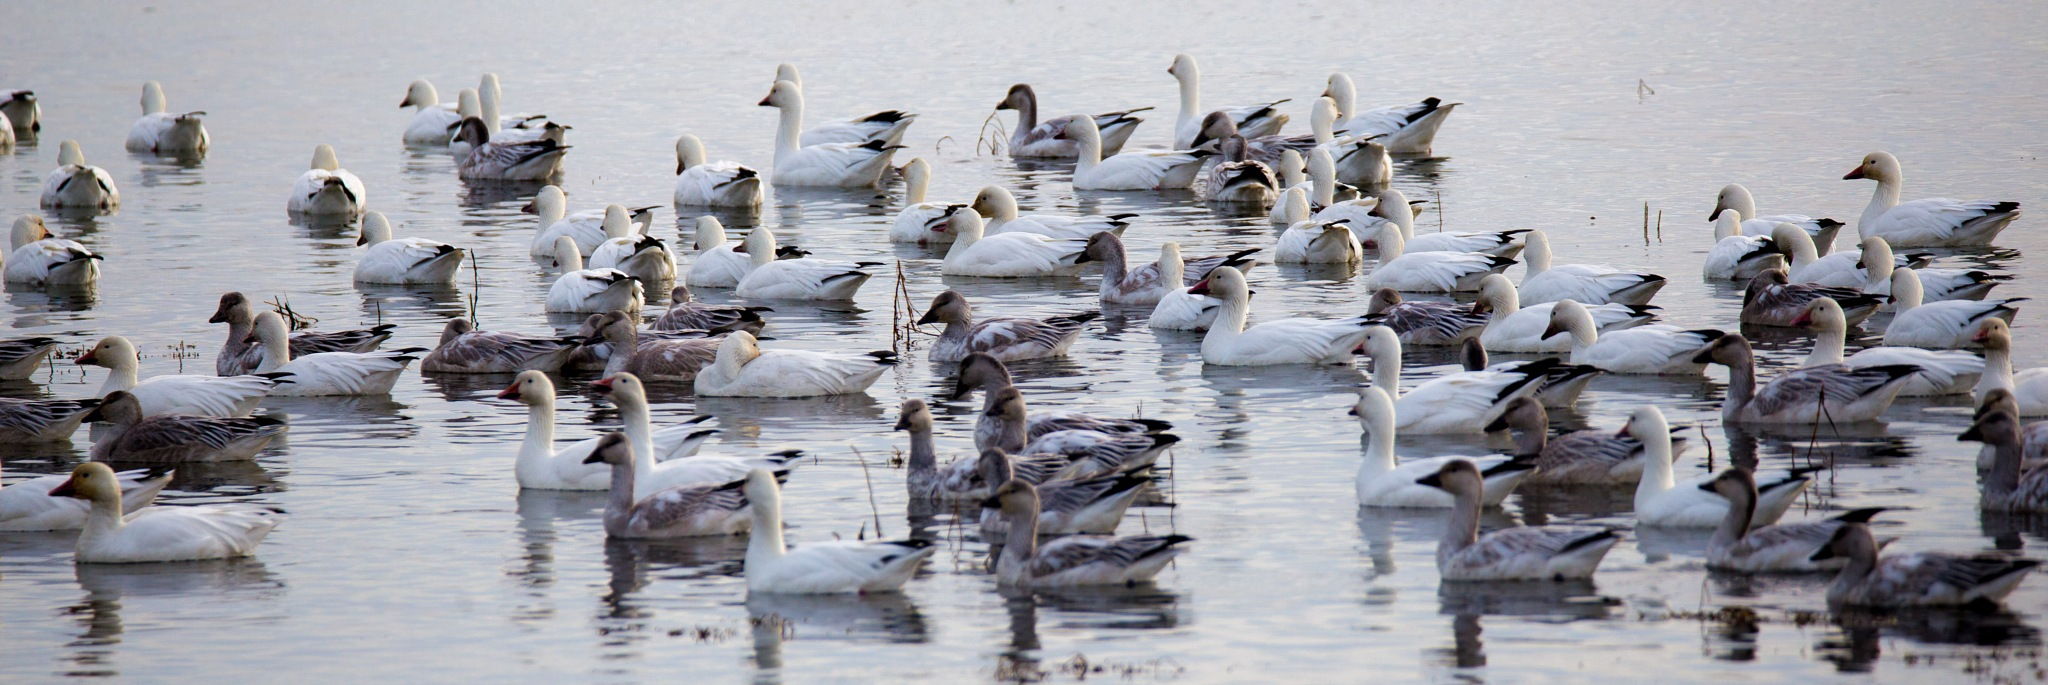 Snow Geese by Dex Horton Photography